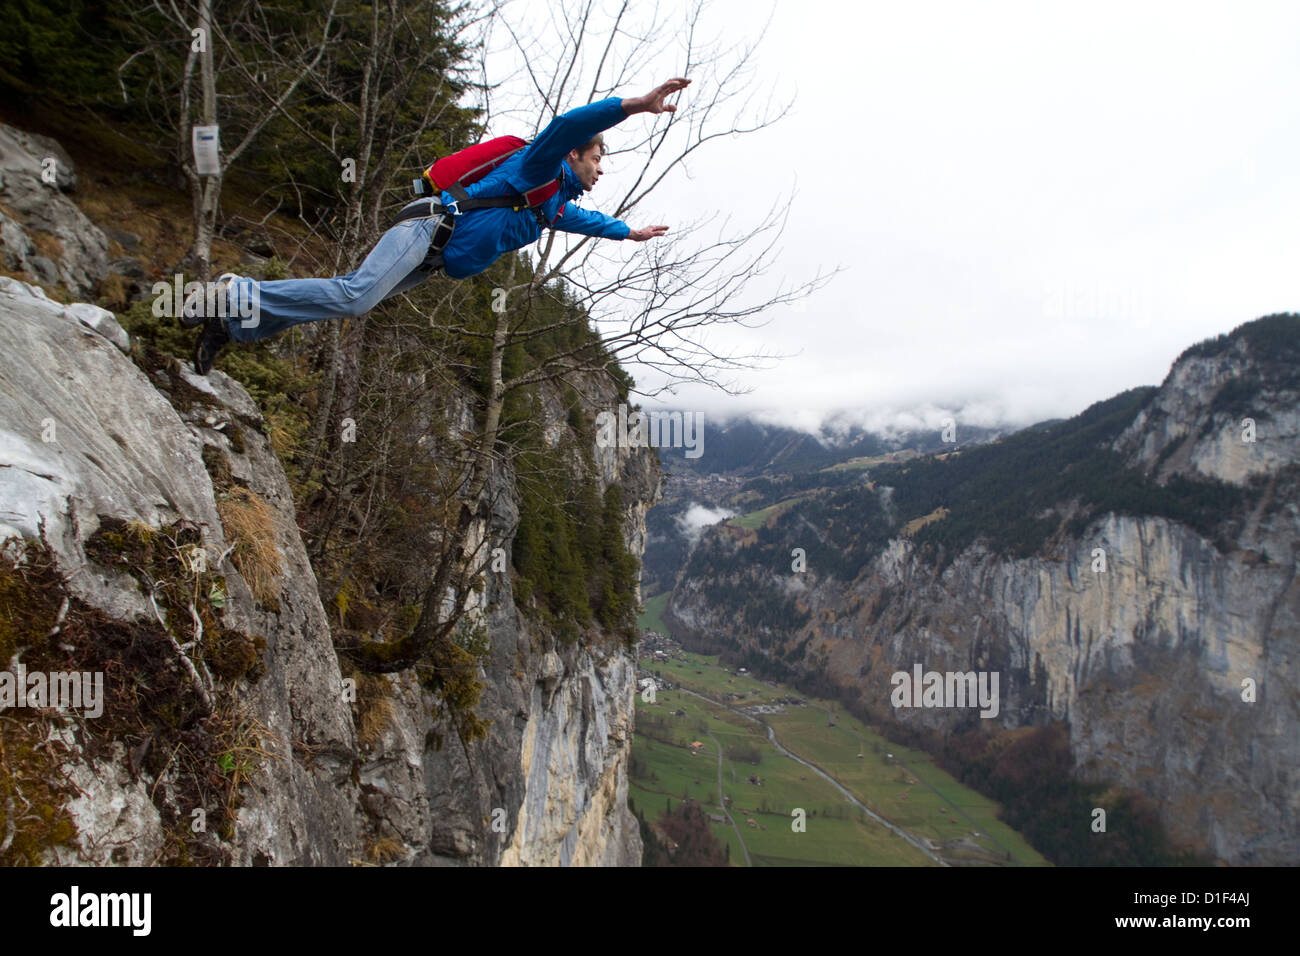 Basejumper jumping off, Bern, Switzerland - Stock Image